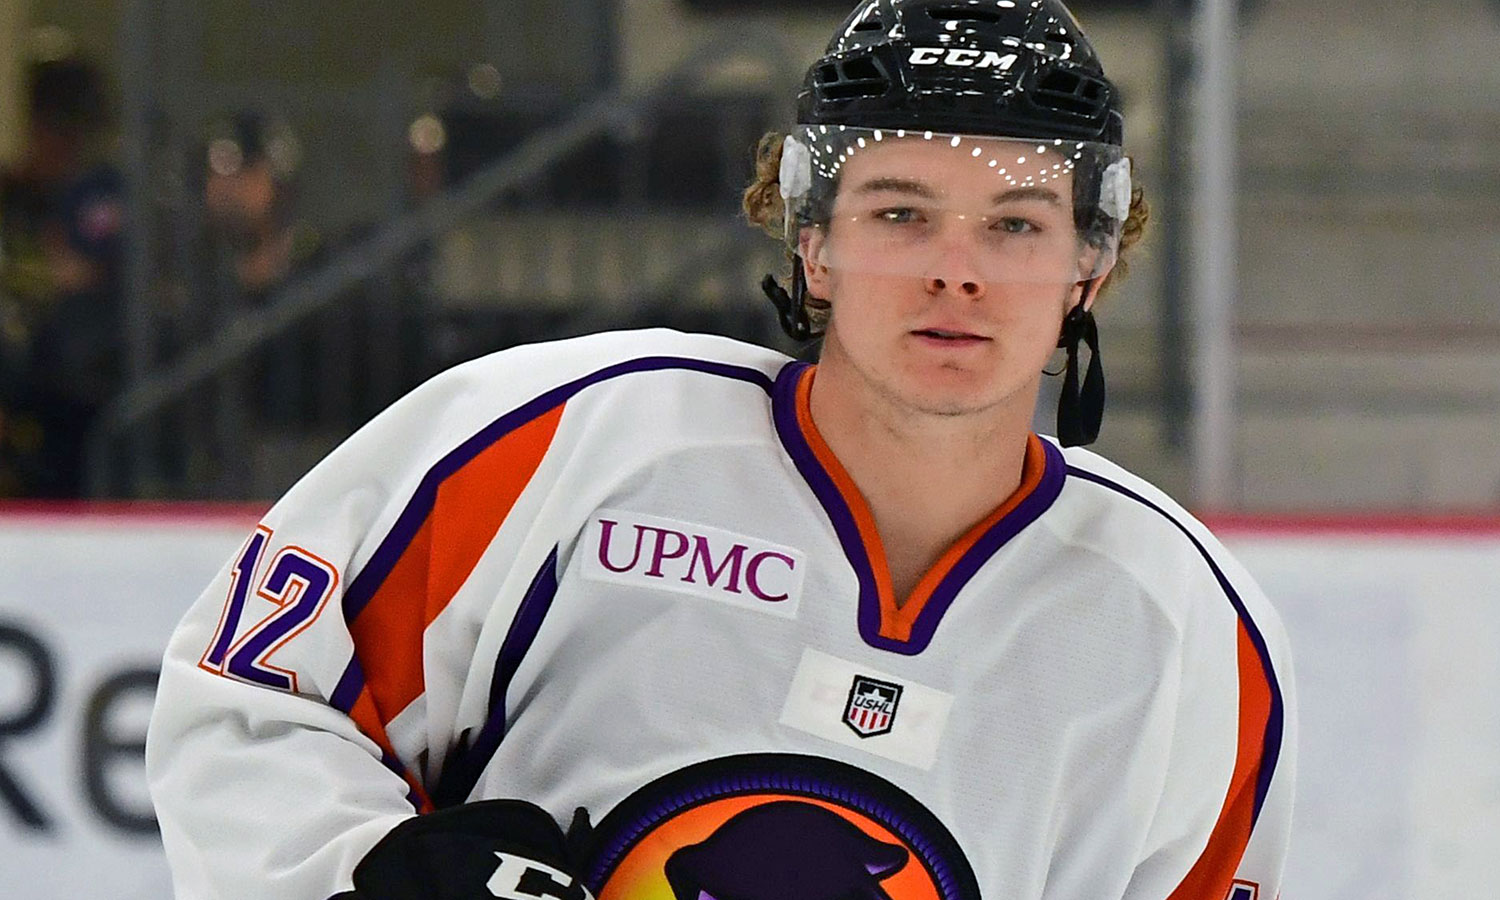 USHL: Austin Pooley Returns Home